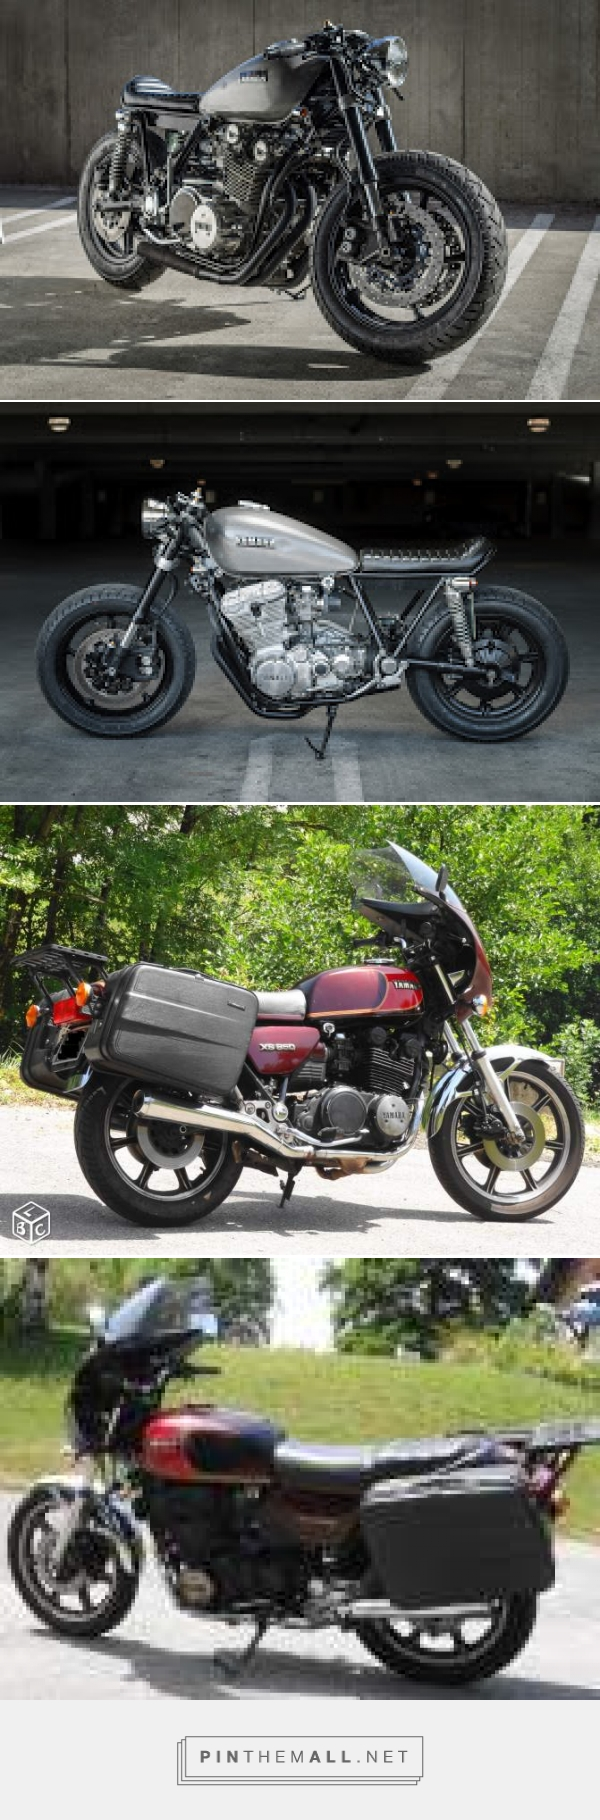 Yamaha 850xs Motos Is�re - leboncoin.fr... - a grouped images picture - Pin Them All